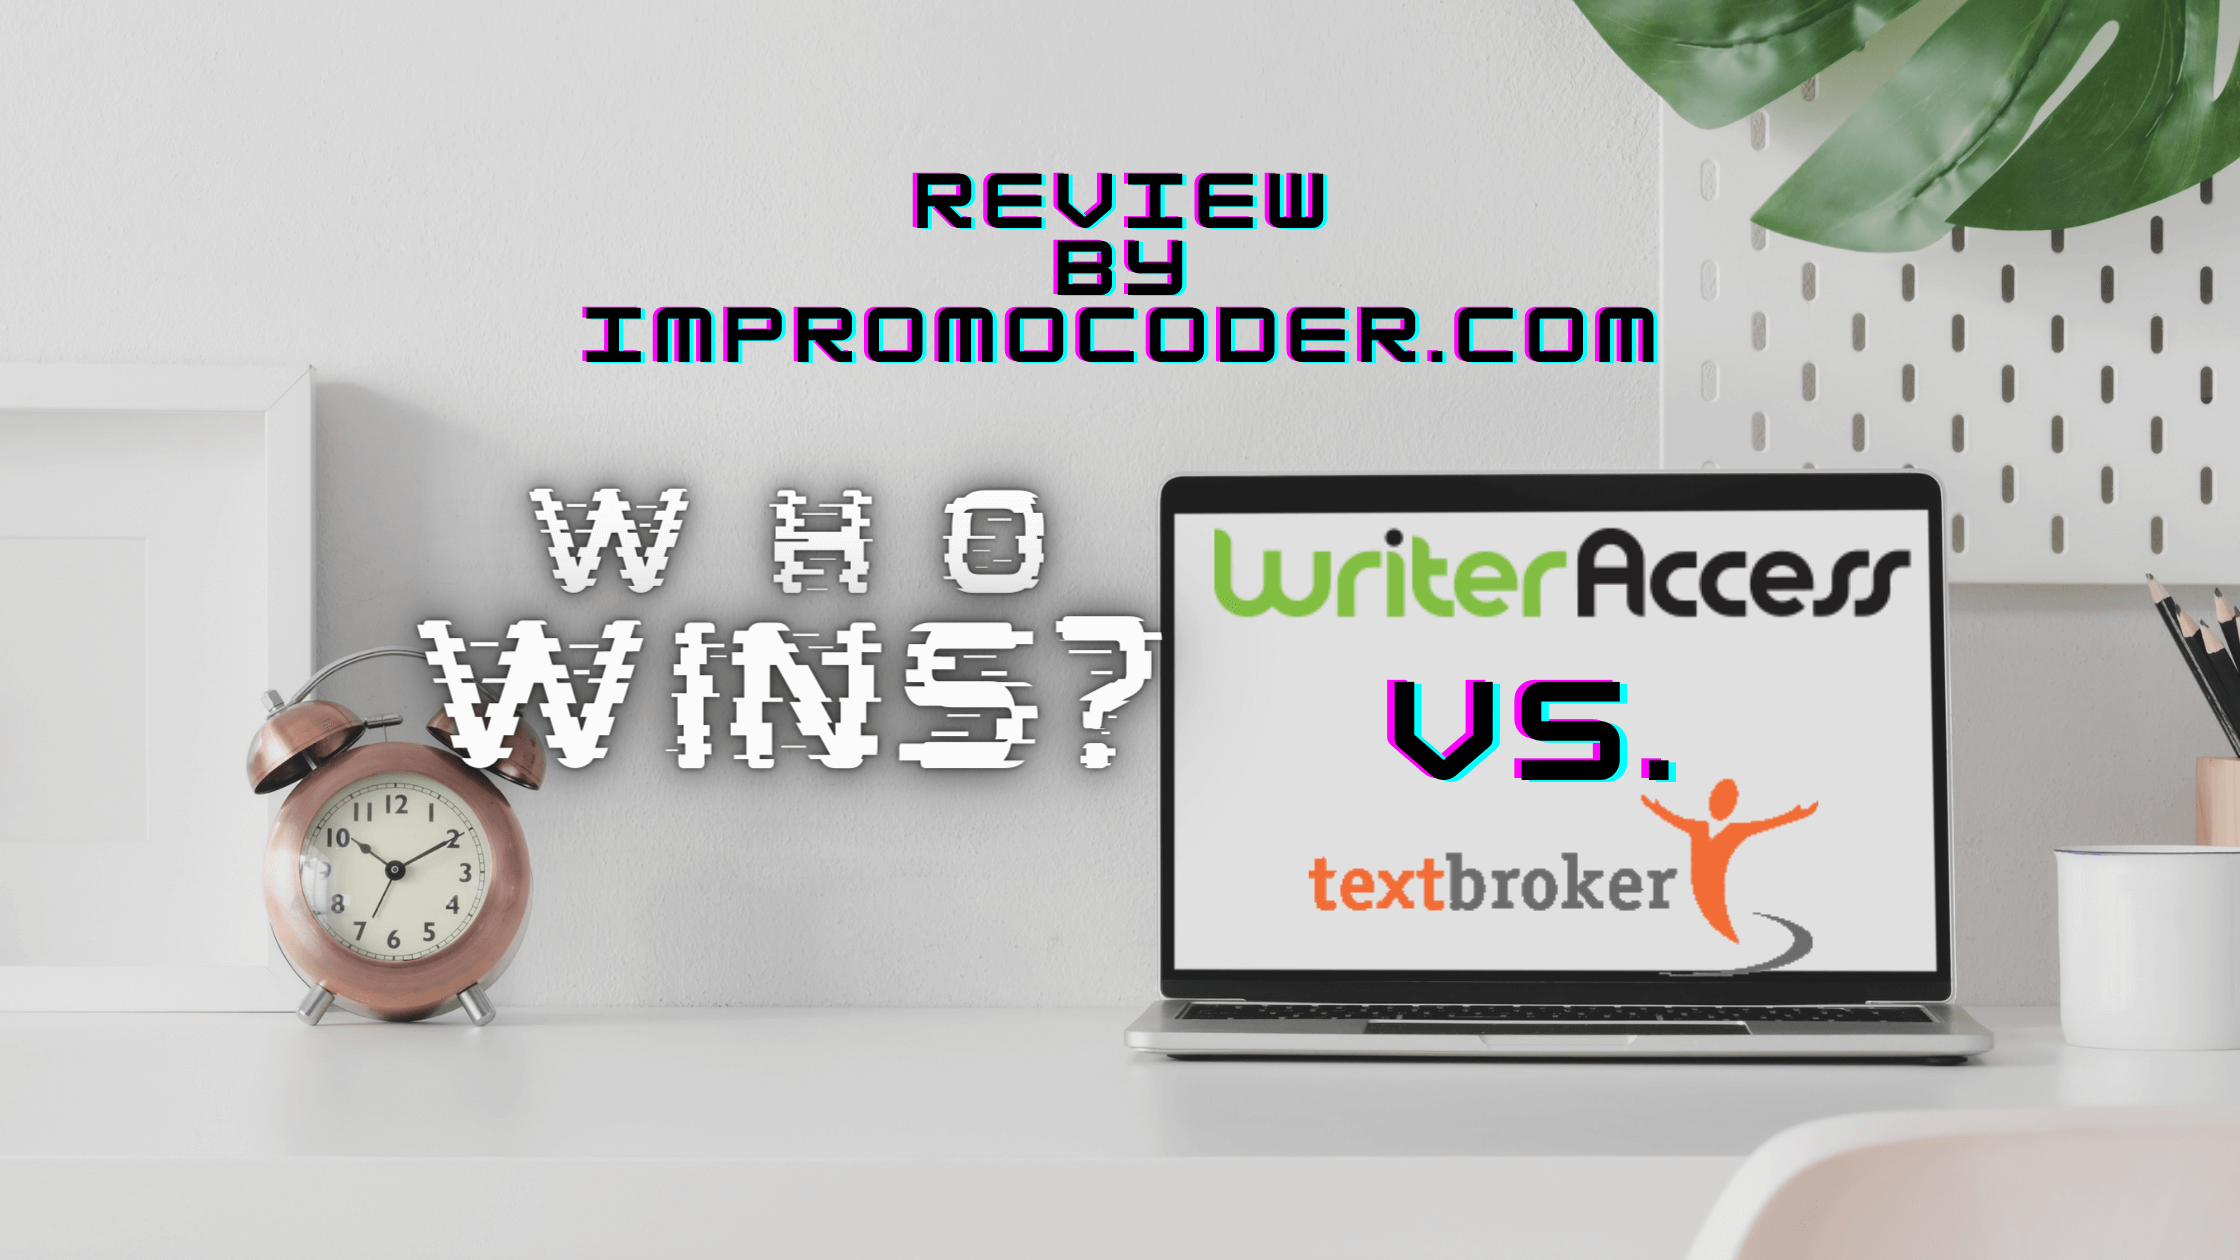 WriterAccess vs TextBroker Comparison - Who Wins?